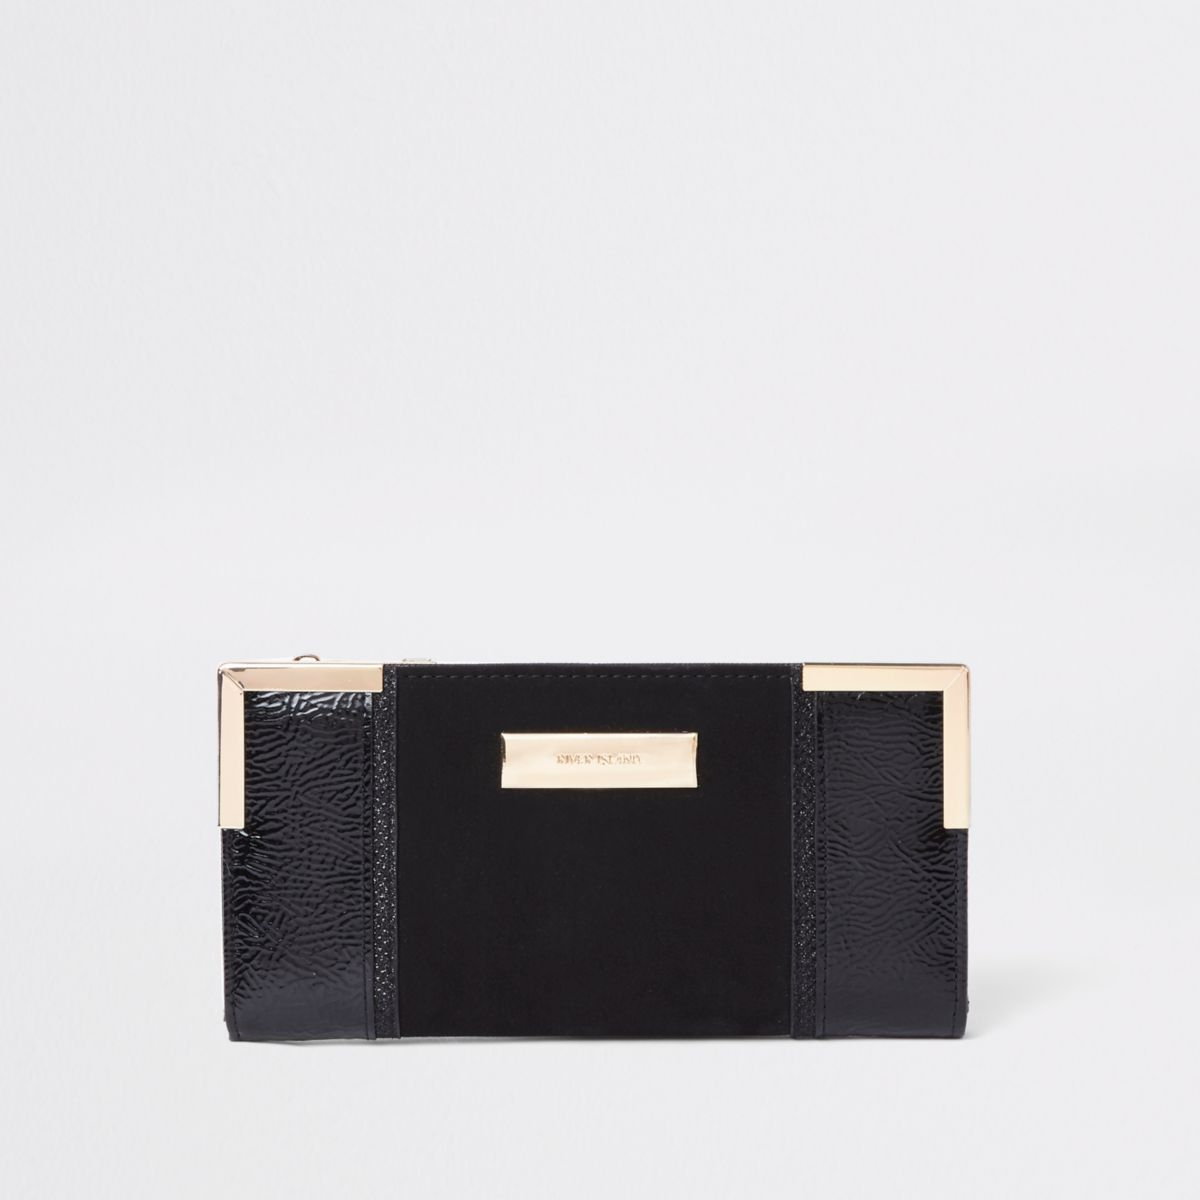 Black Patent Panel Slim Foldout Purse by River Island